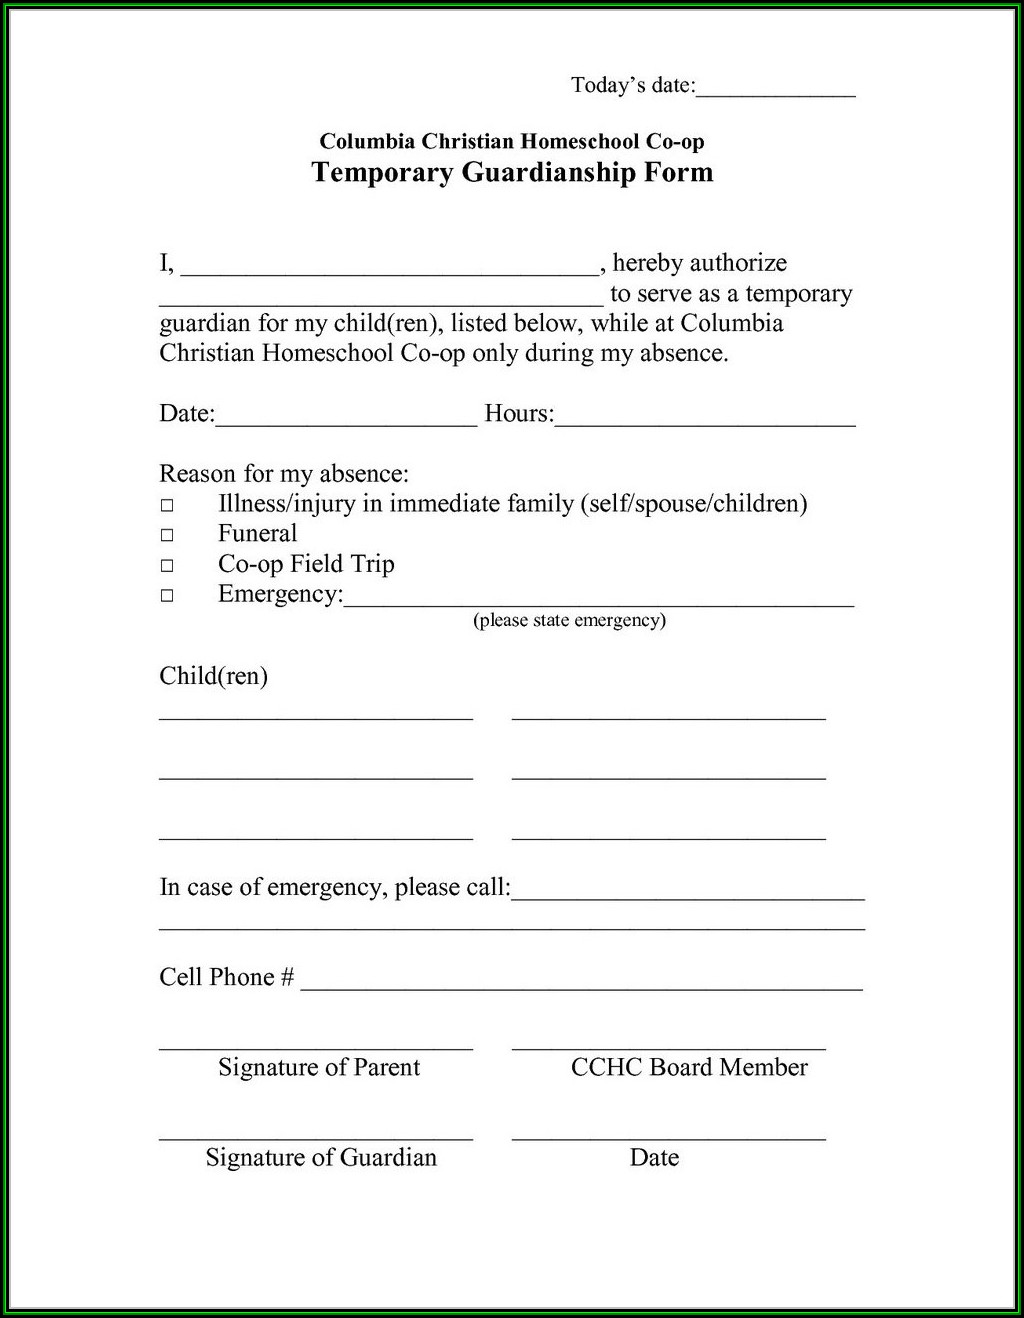 Kansas Guardianship Forms